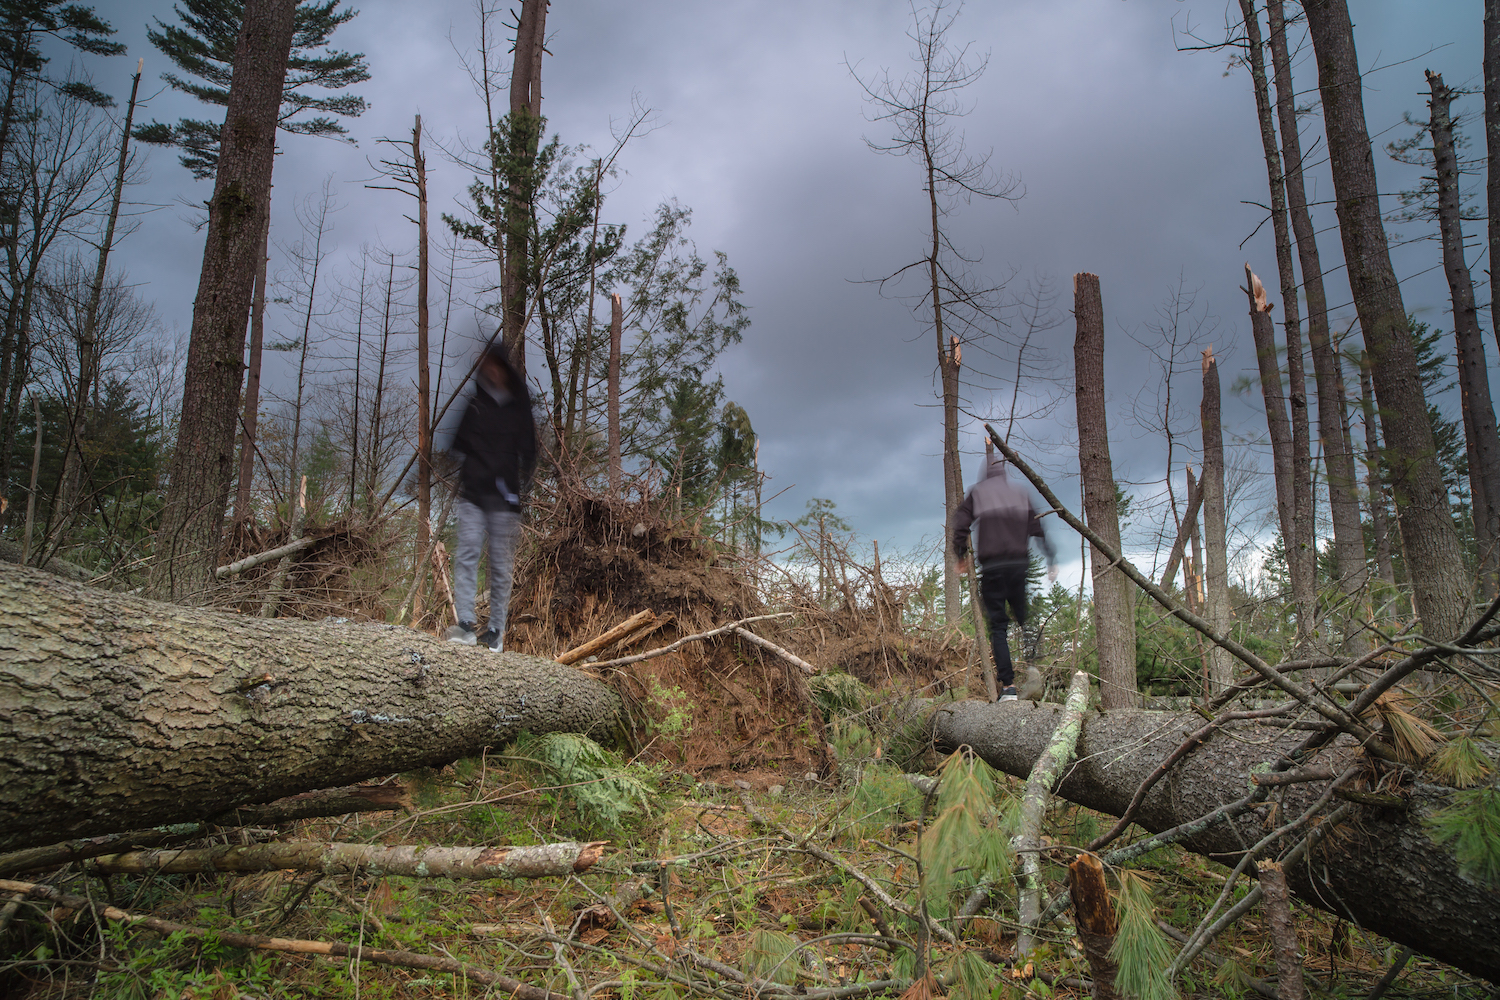 Blurred people walking after hurricane example image 1